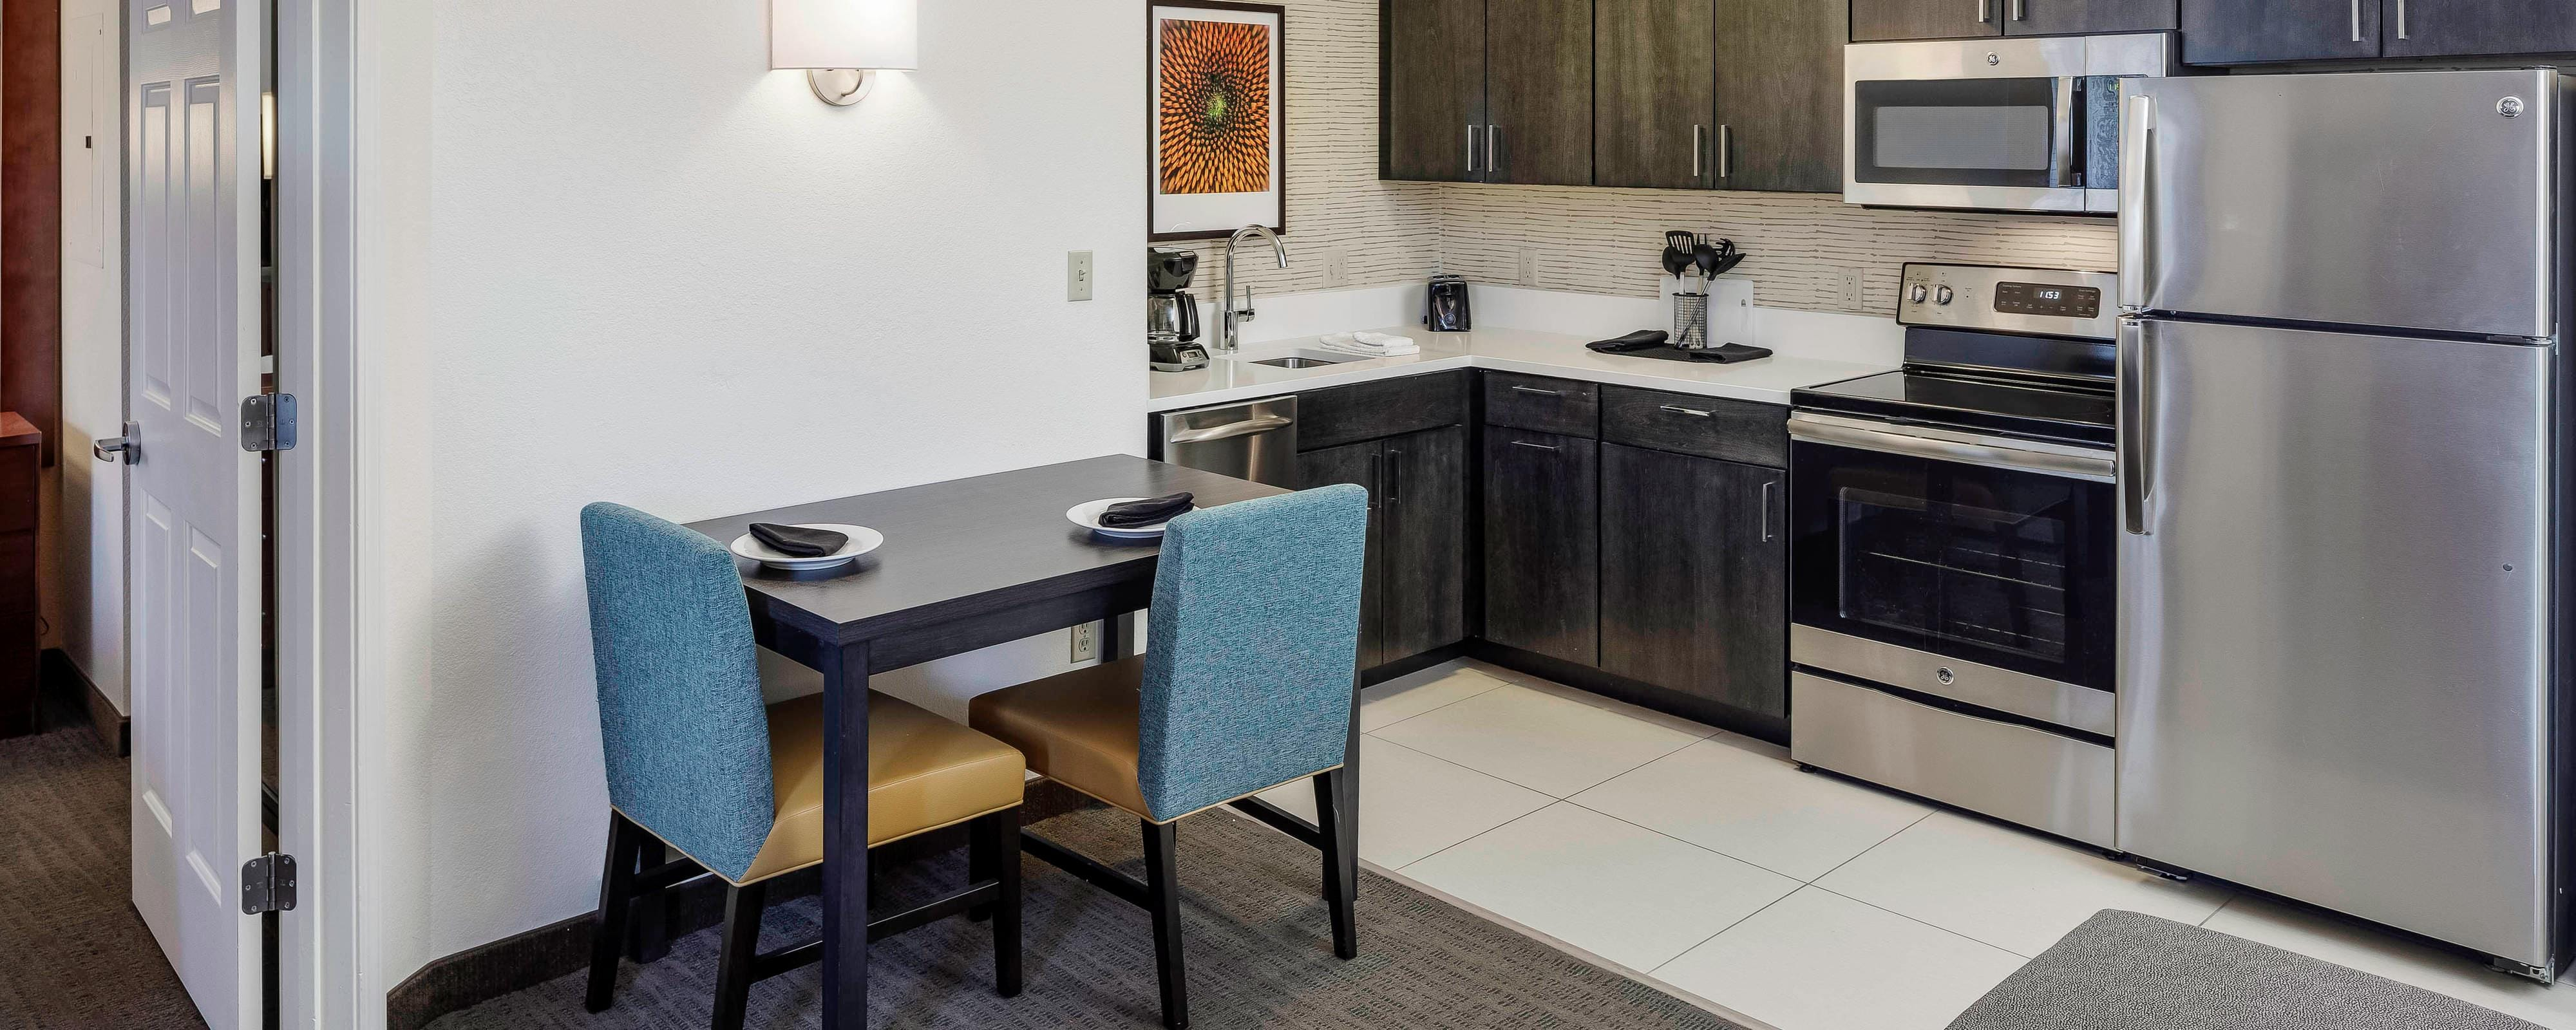 Portsmouth, NH Hotels | Hotel Suites in NH | Residence Inn